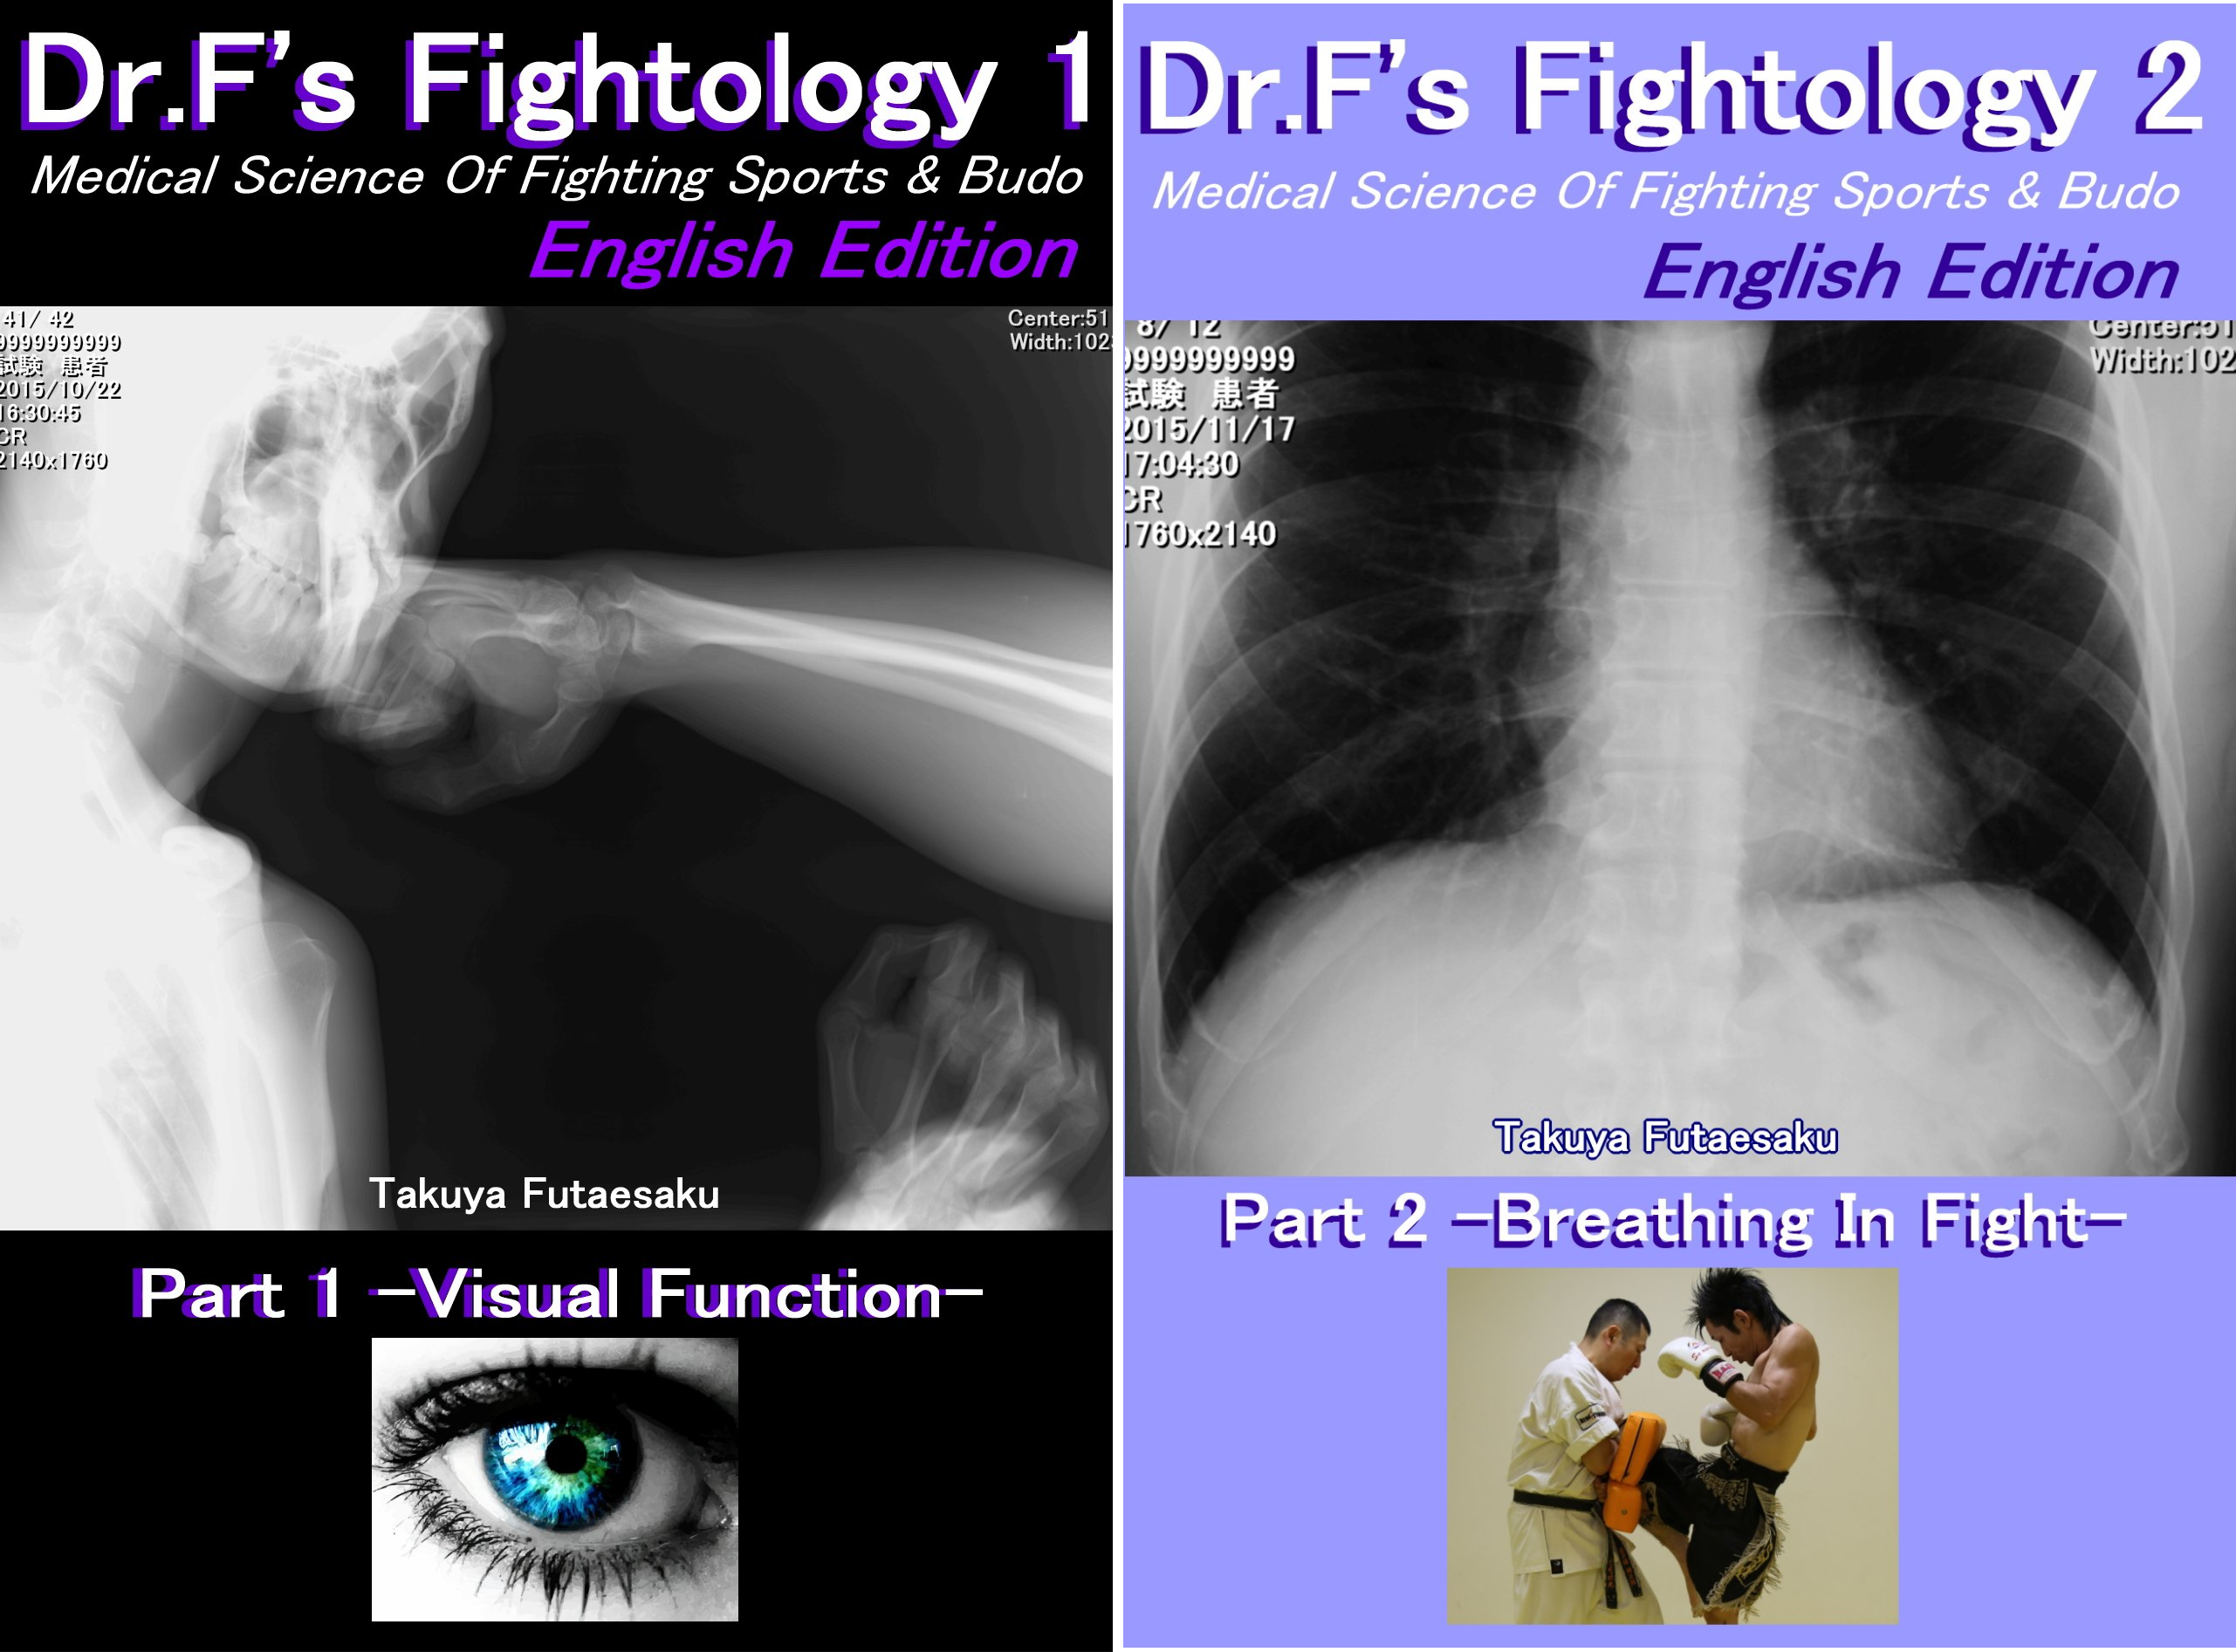 Dr.F's Fightology (2 Book Series)